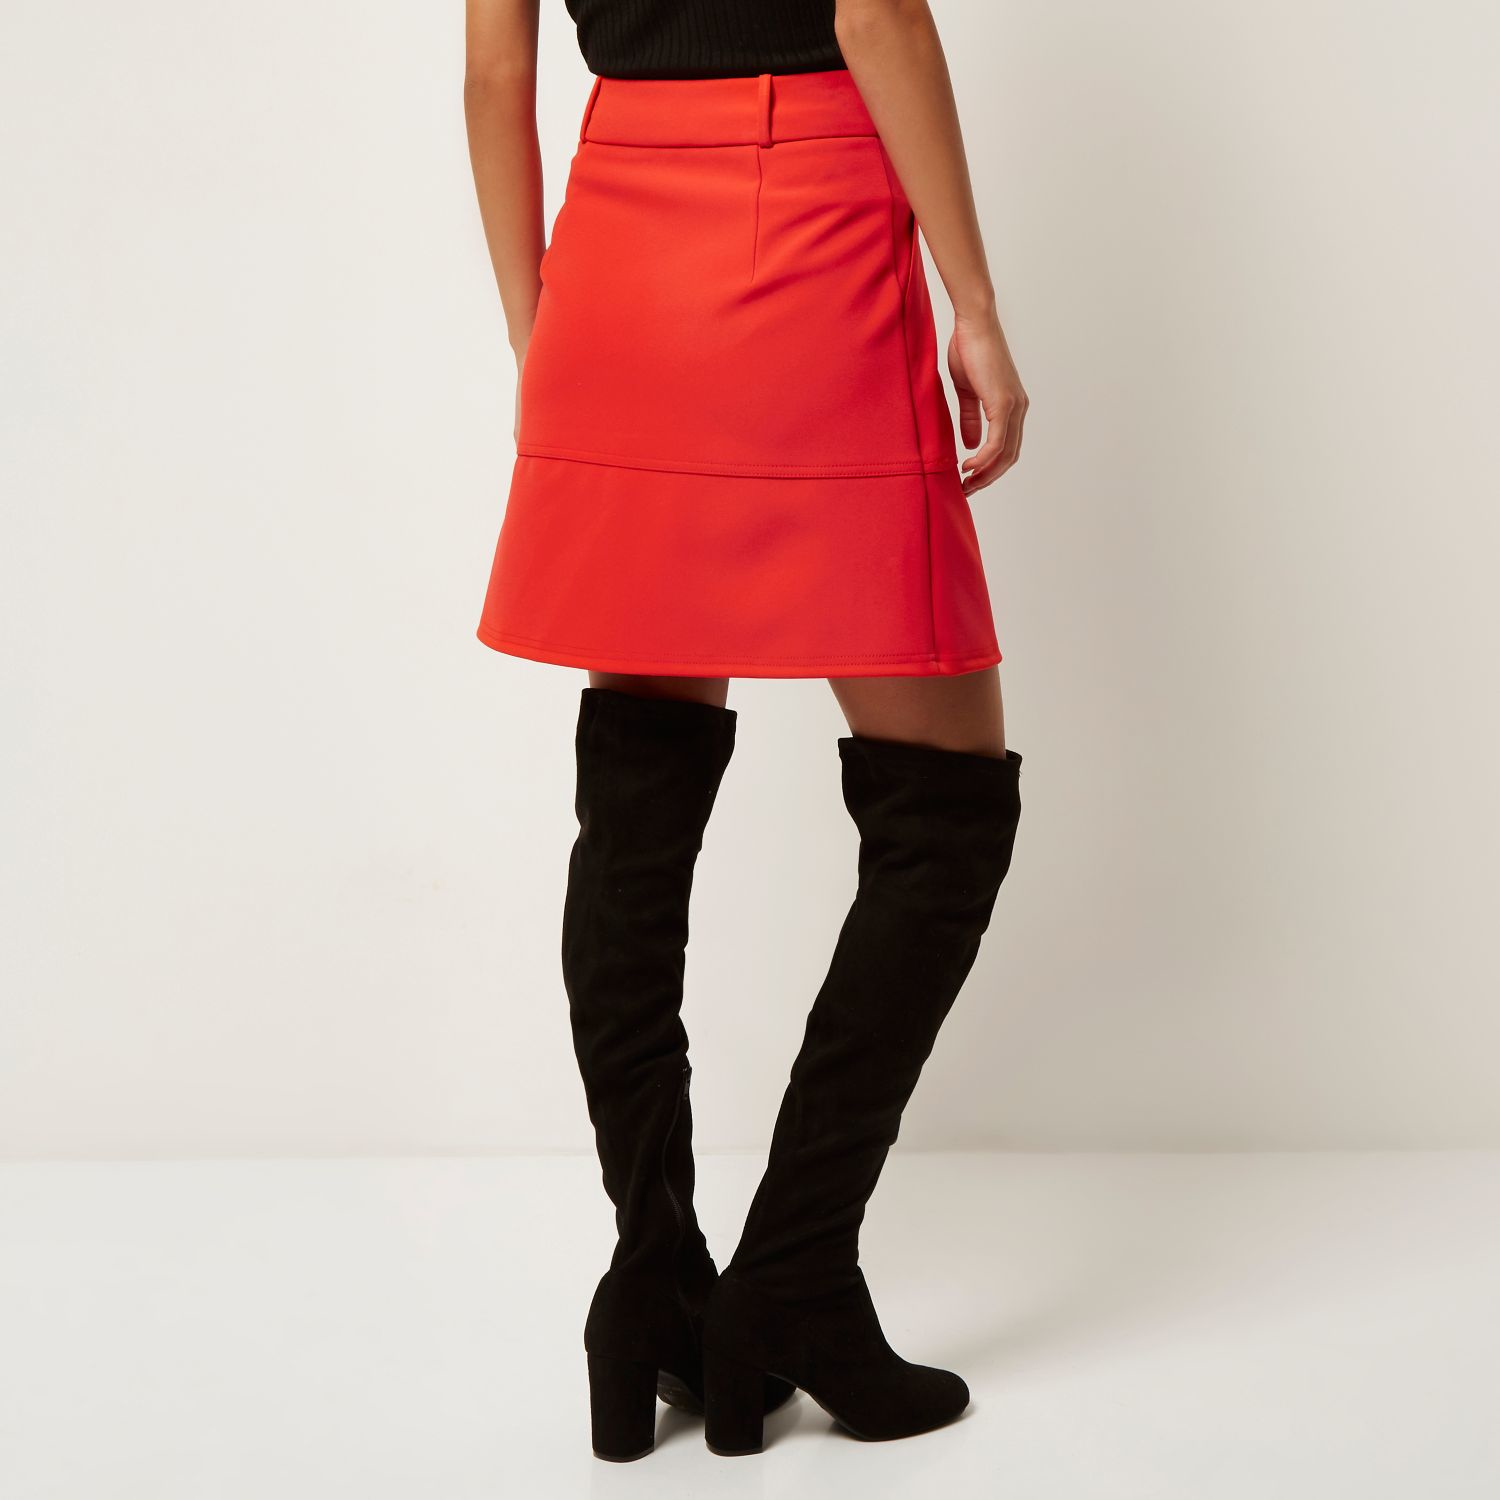 Zip River A Island In Line Red Rok Up Lyst lFKTJ1c